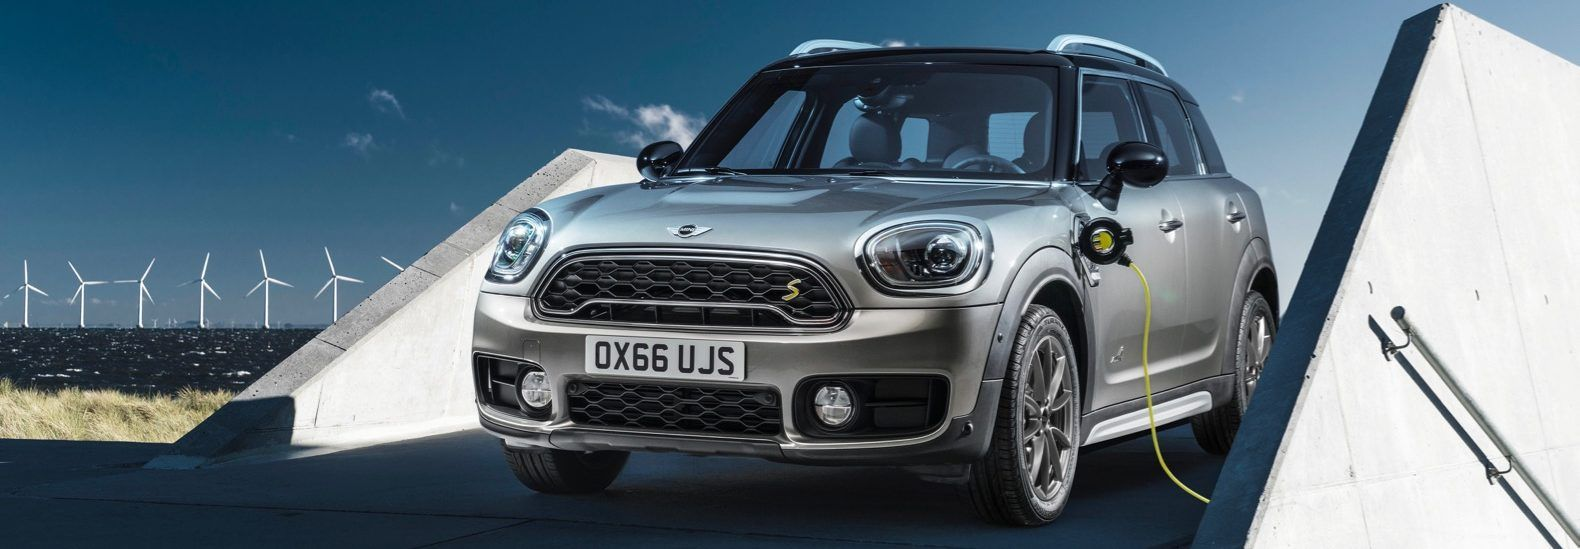 2017 Countryman Crossover Is The First Mini Plug In Hybrid Mini Cooper Mini Countryman Mini Cooper S